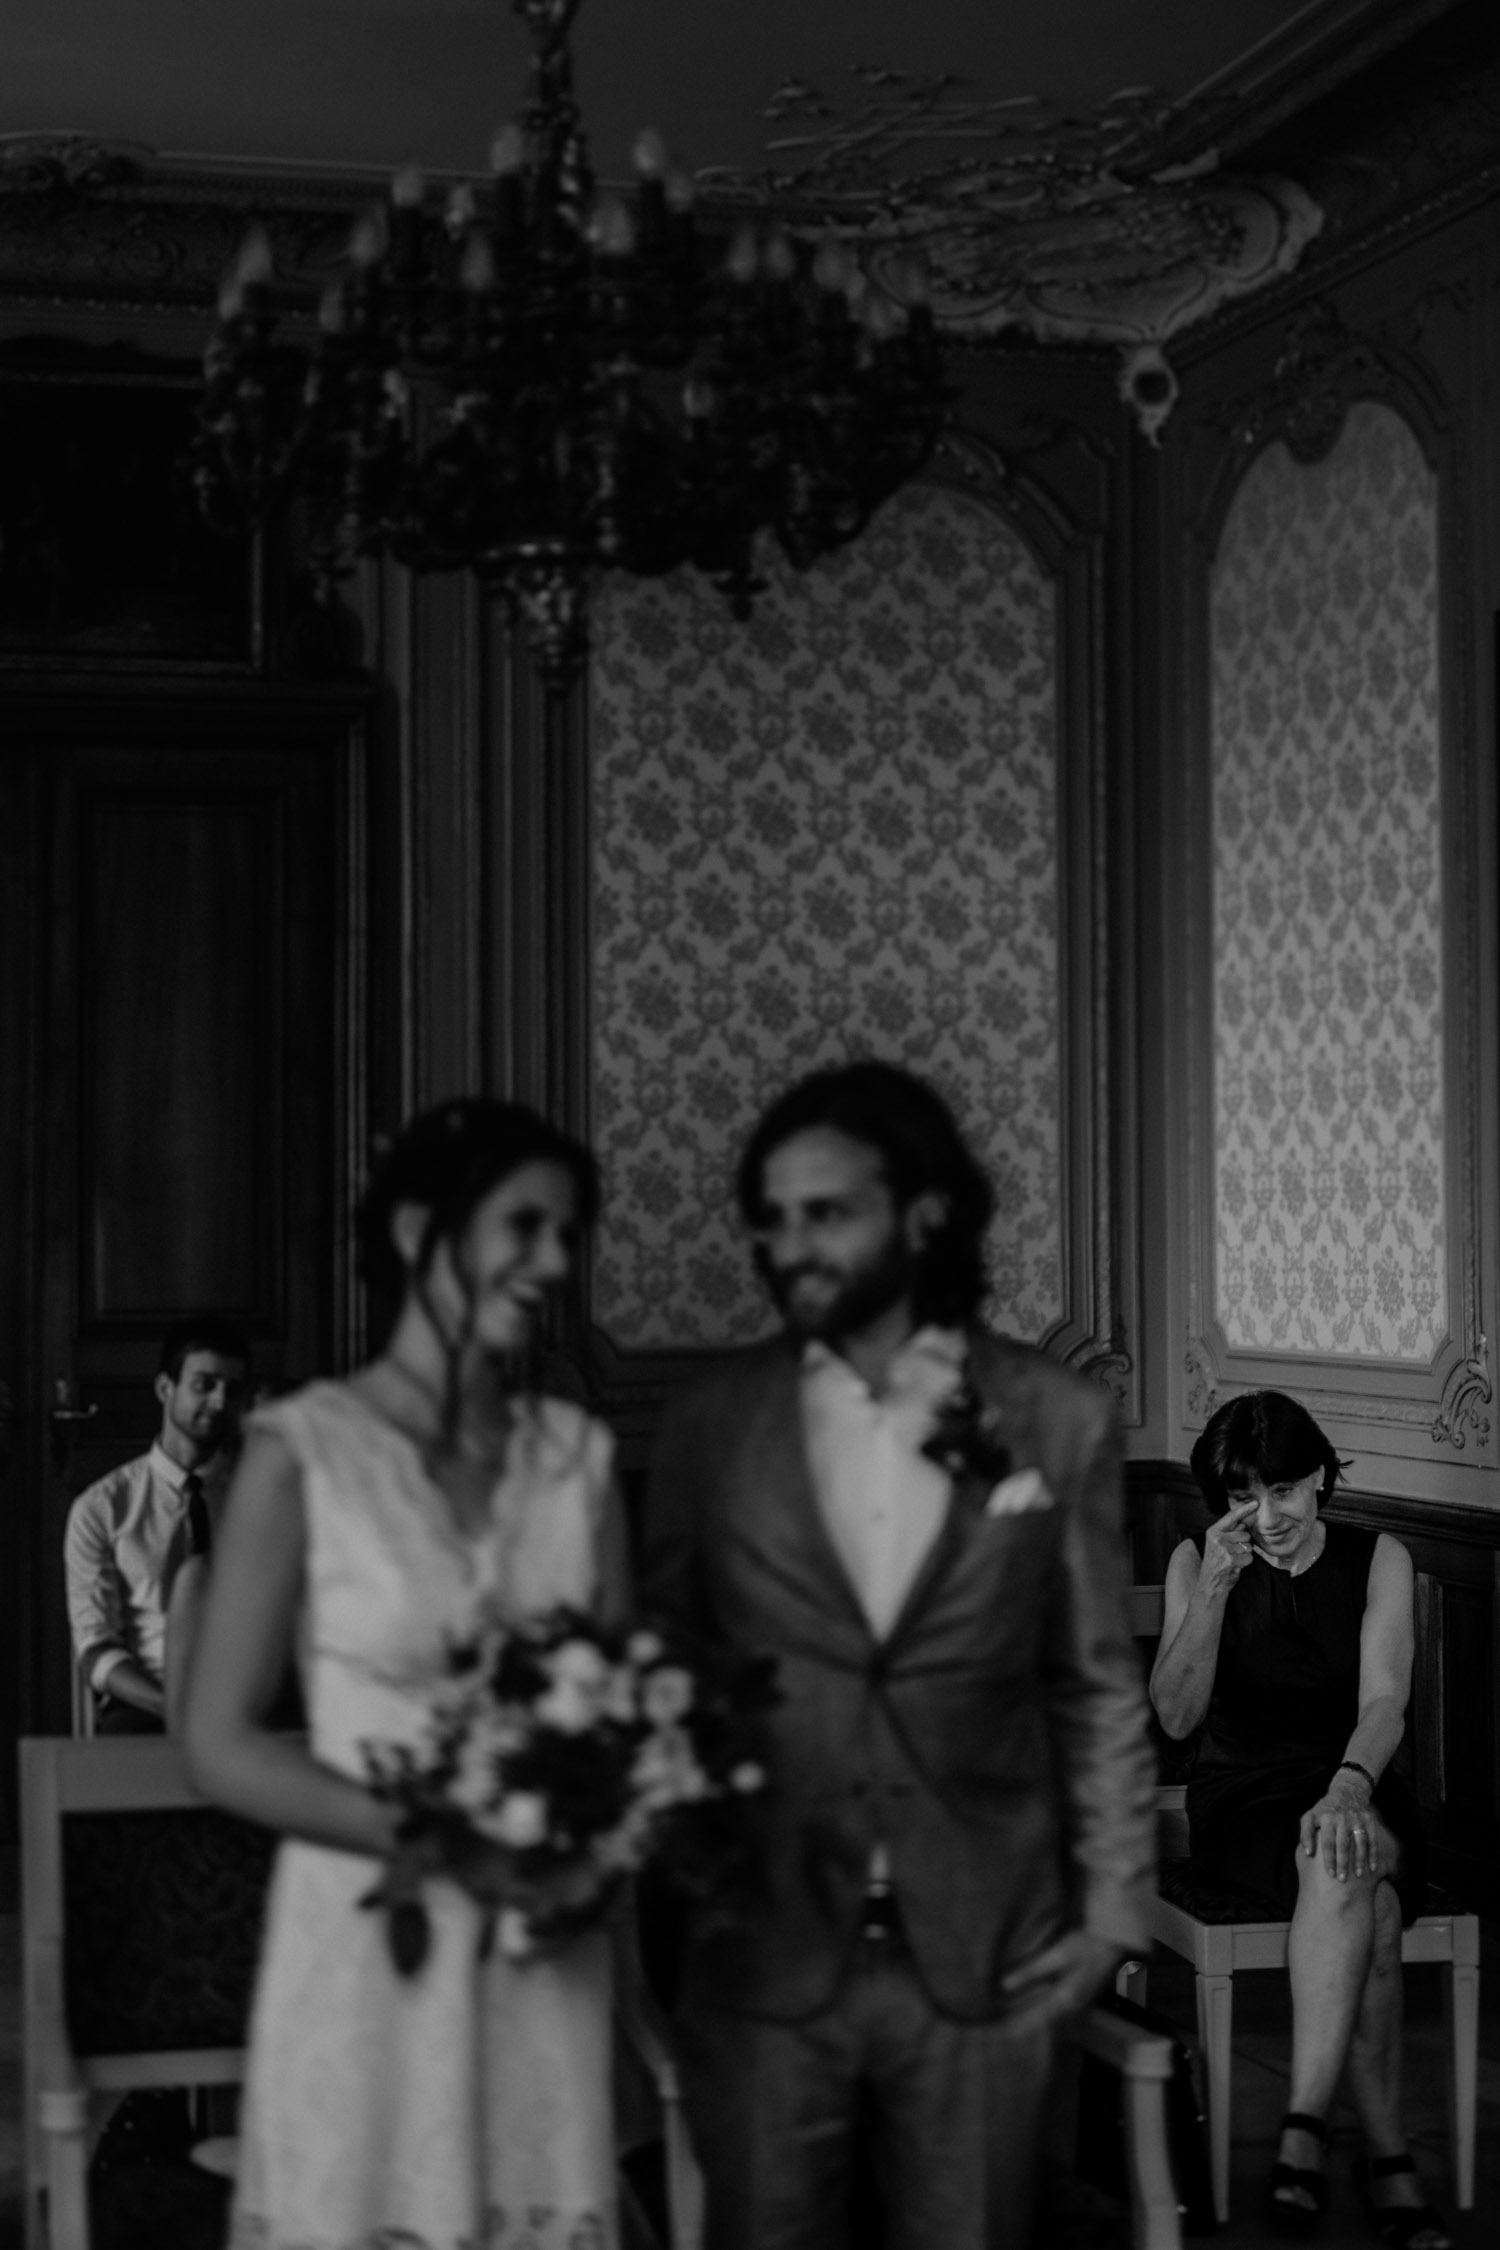 Wedding photographer switzerland basel natural unposed civil wedding old town Basel Minster couple shoot bohemian style documentary